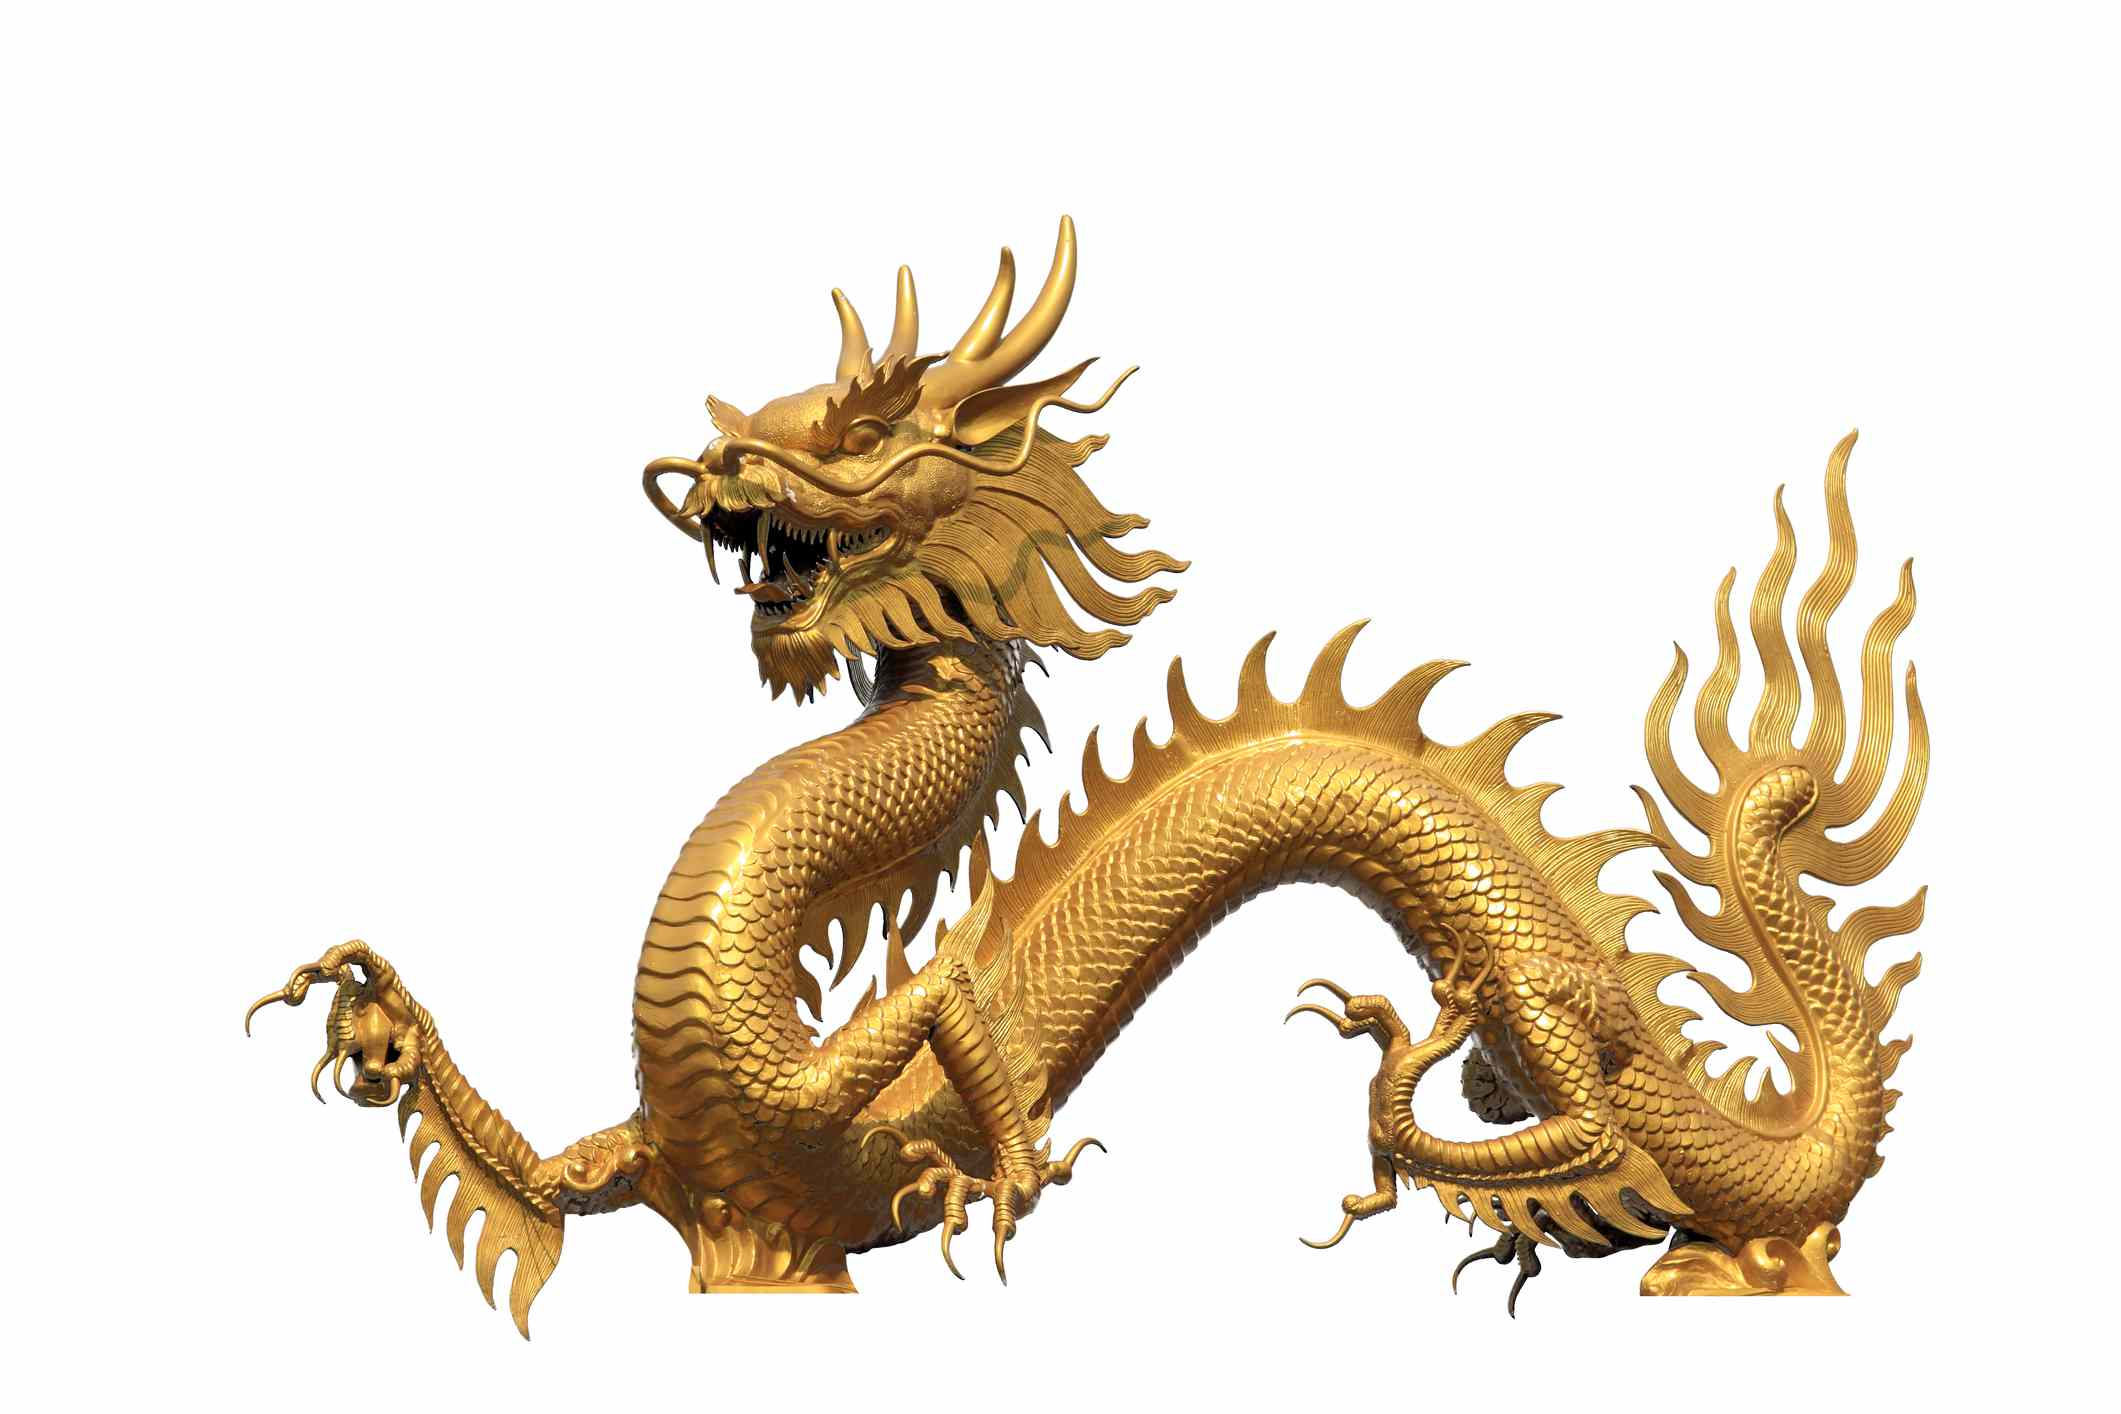 Flaming gold Chinese dragon on white background